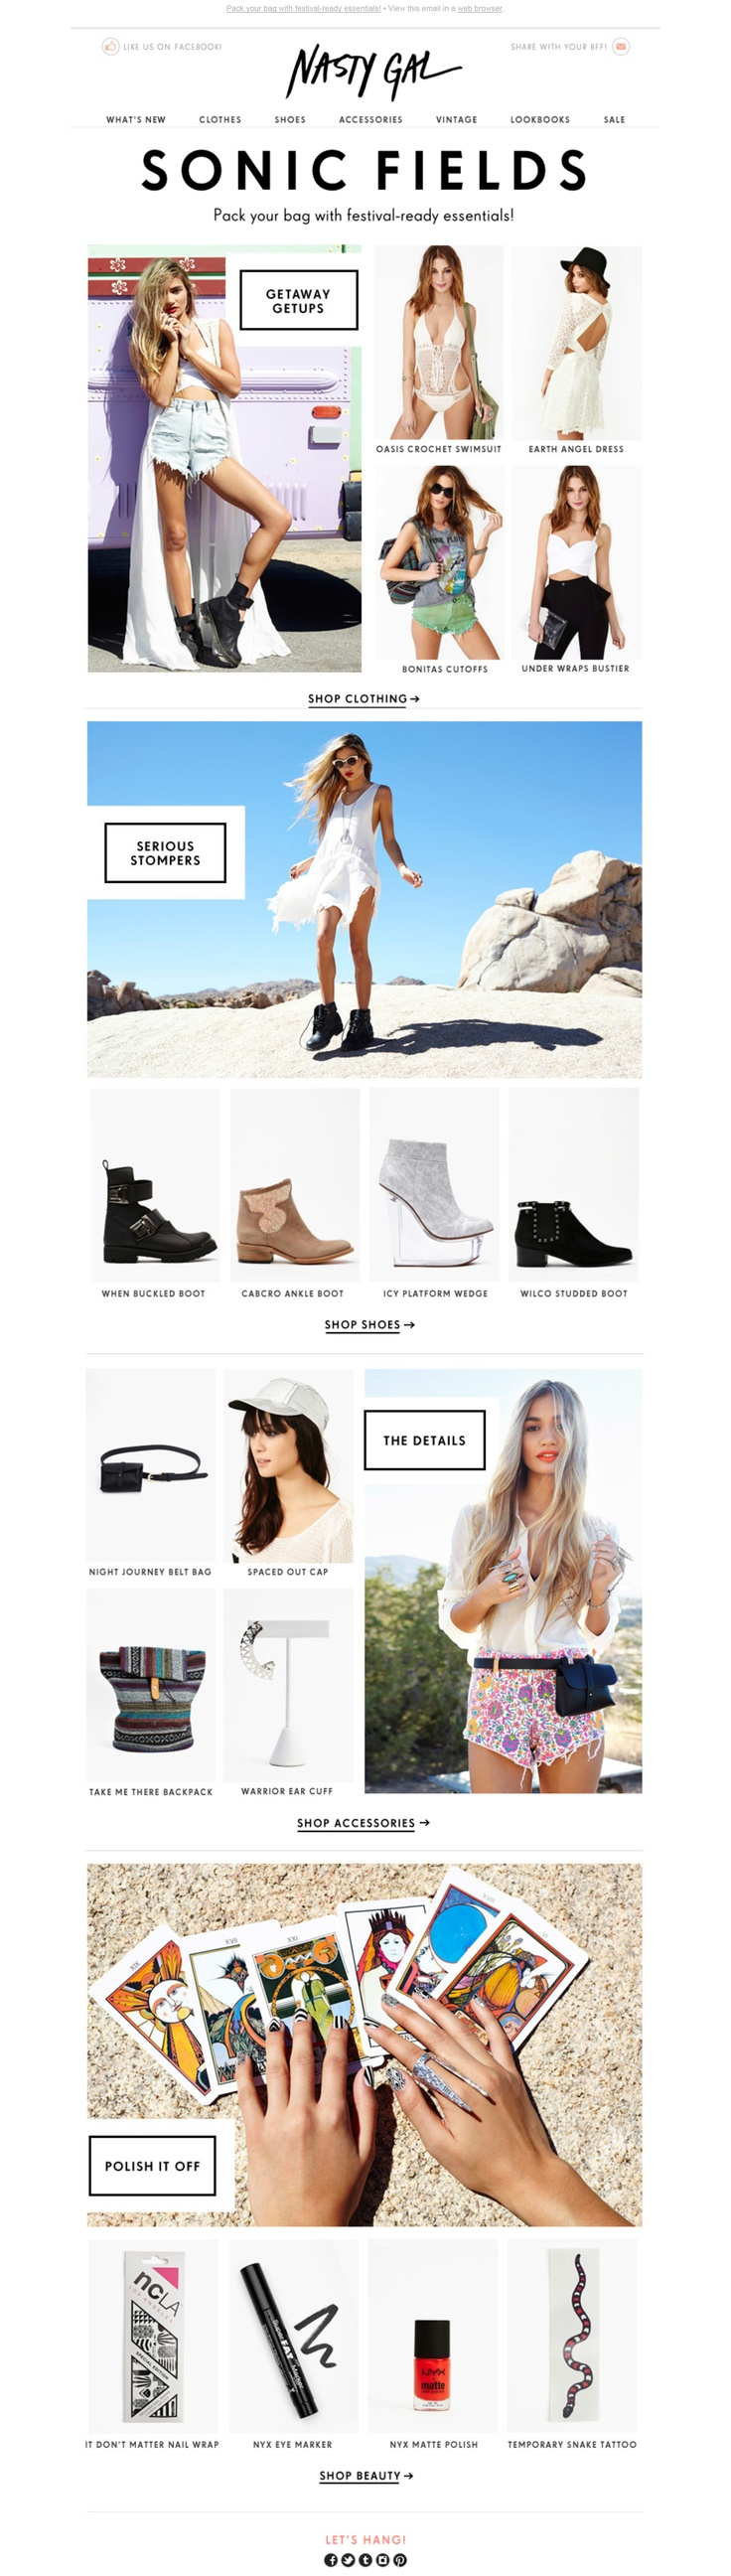 Nasty Gal's newsletter - Sonic fields